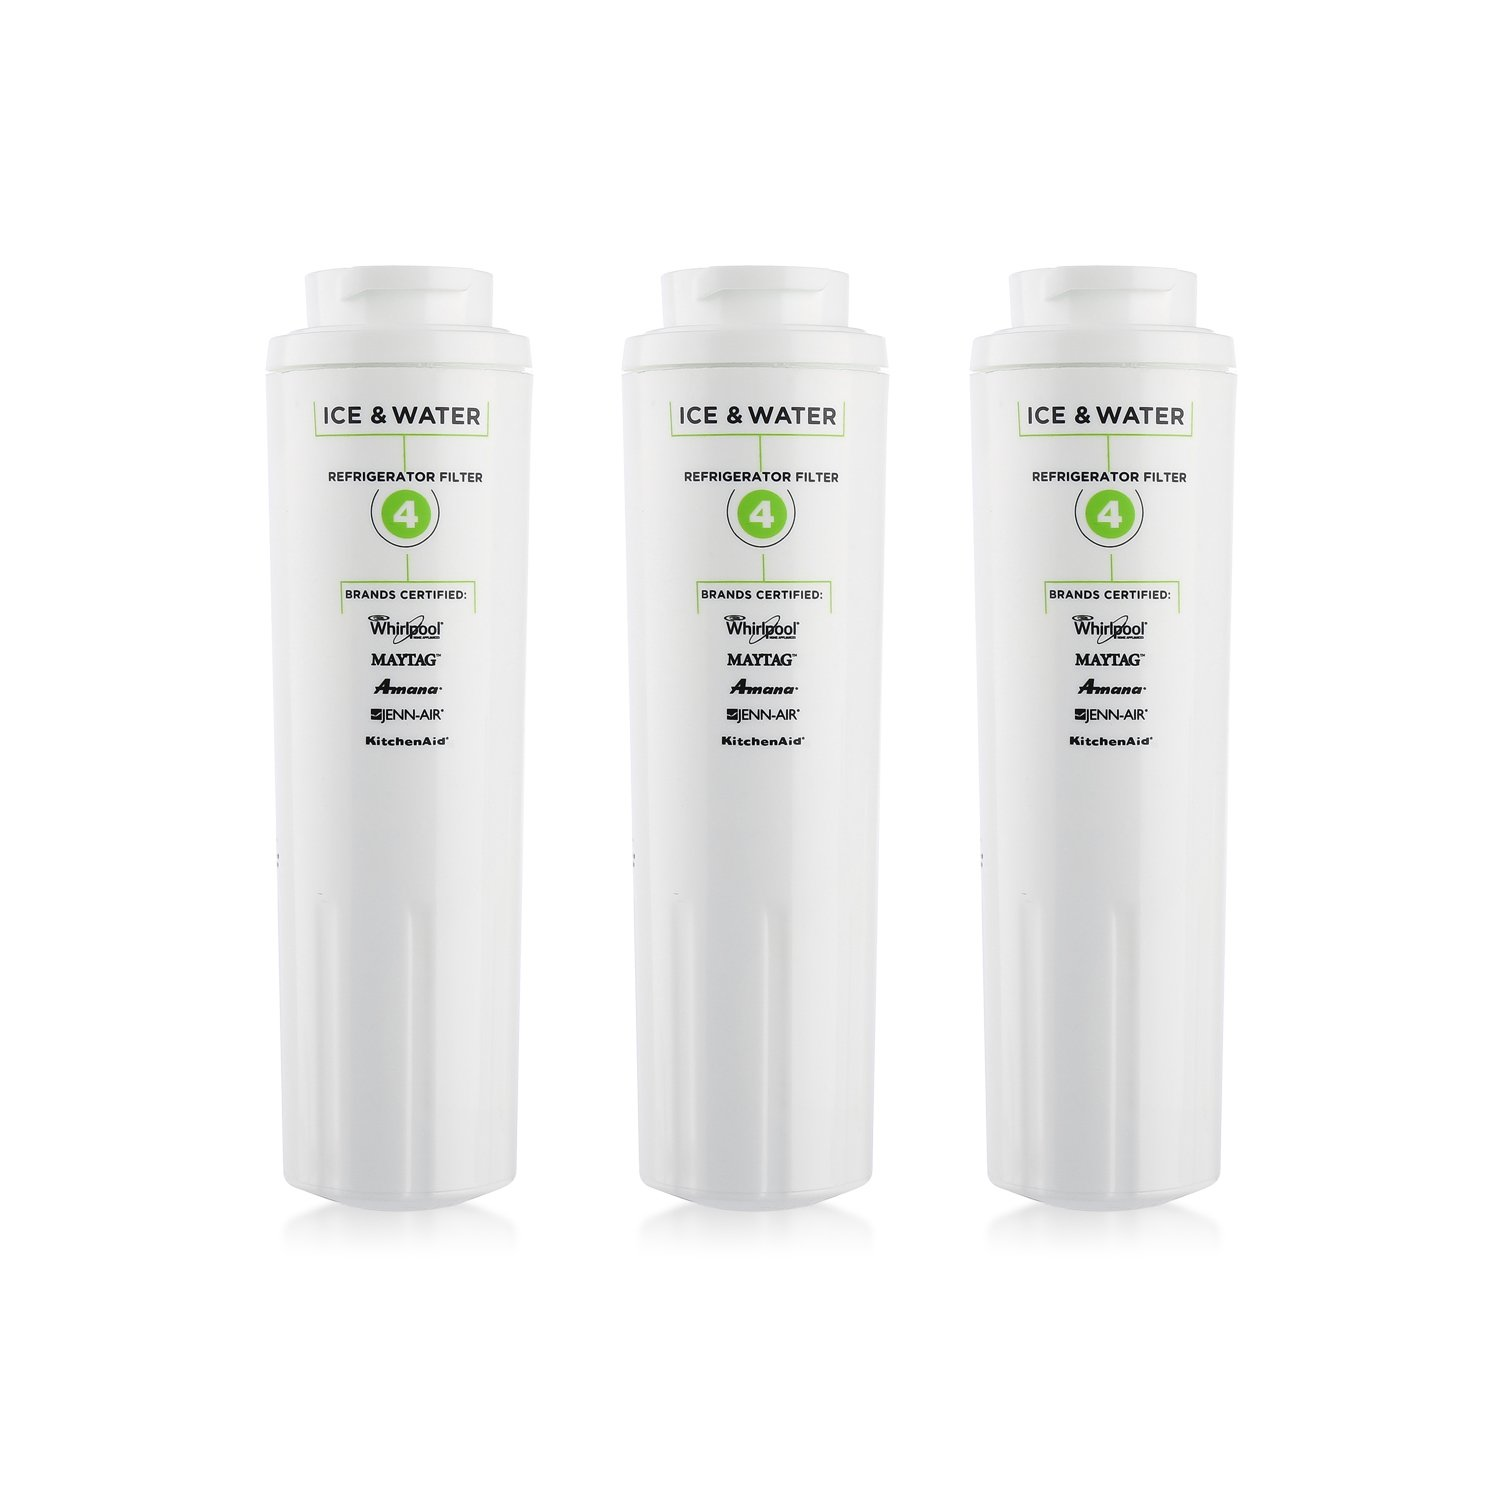 3 Count Refrigerator Water Filters 4 4396-/395 Replacement Water Filter for Kenmore 9084